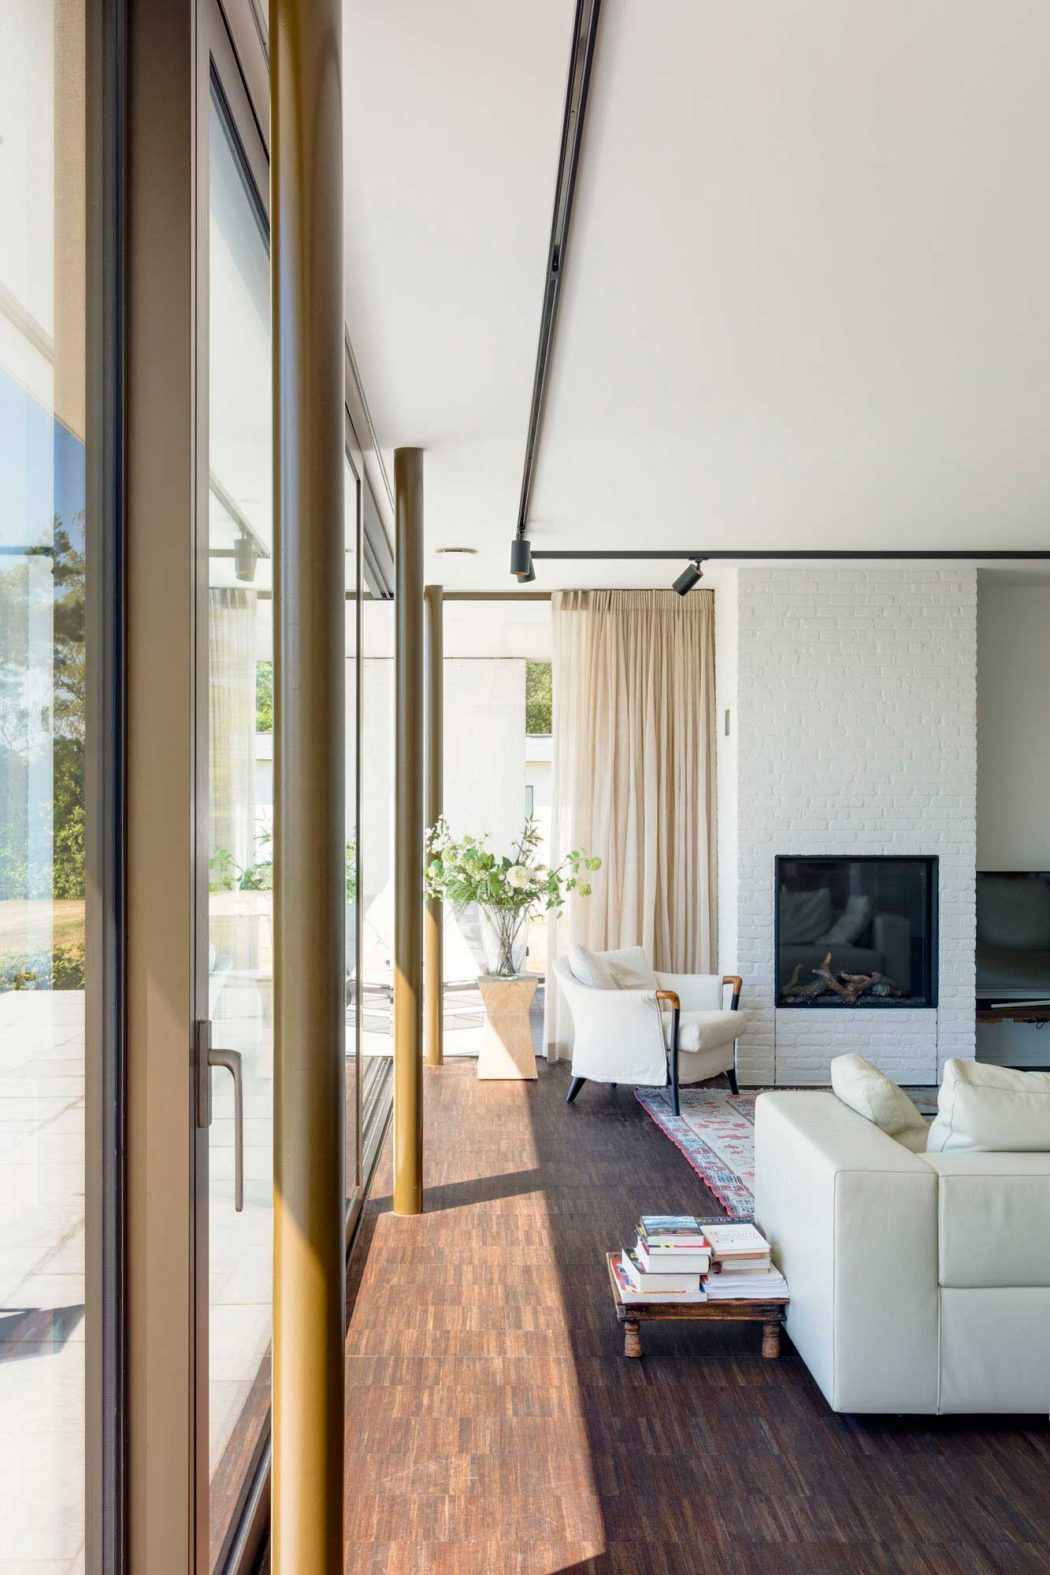 House by the Lake by MO Architecten